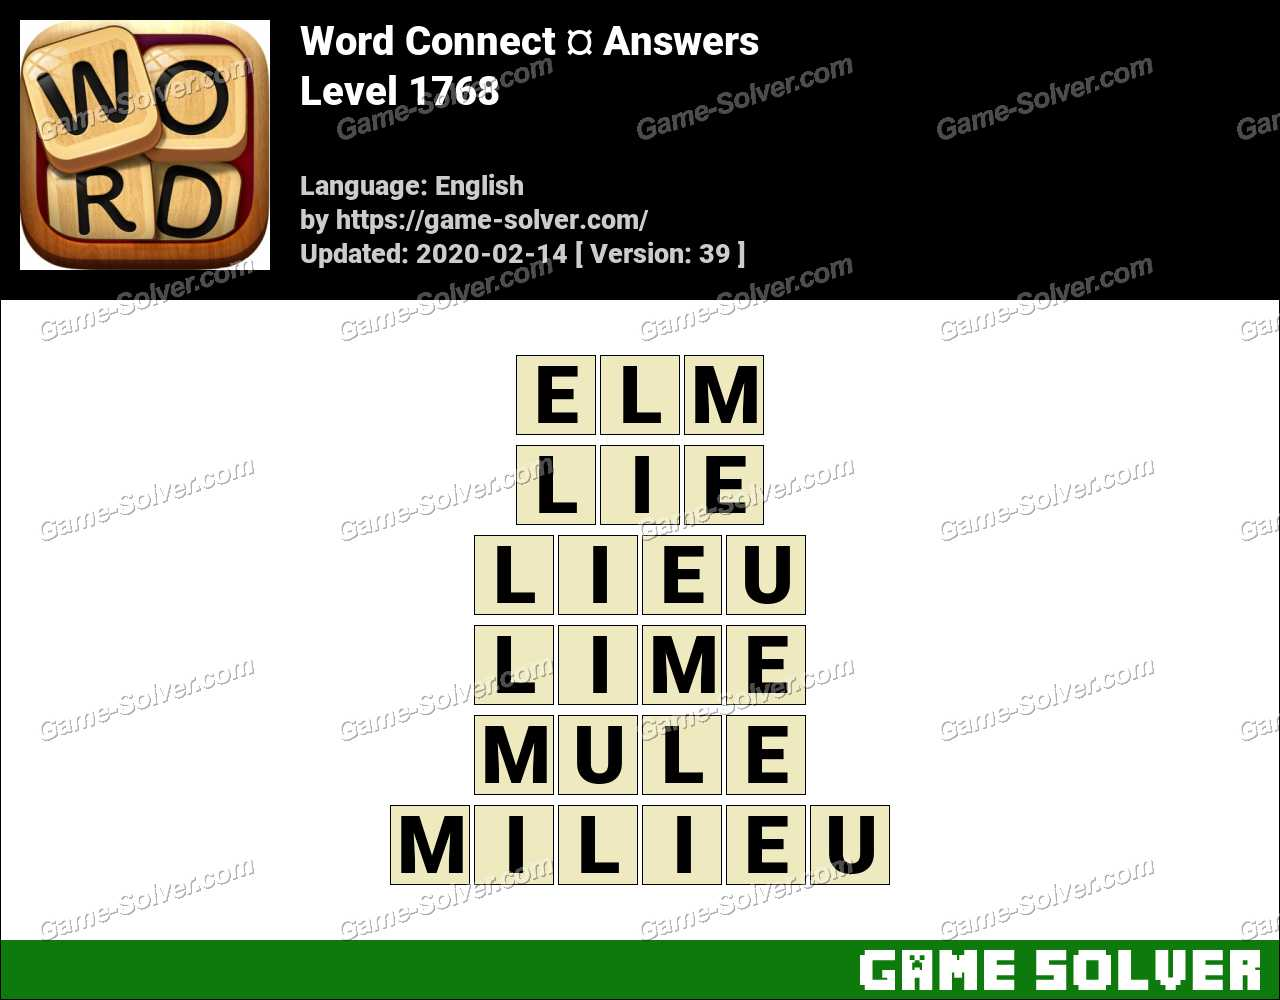 Word Connect Level 1768 Answers